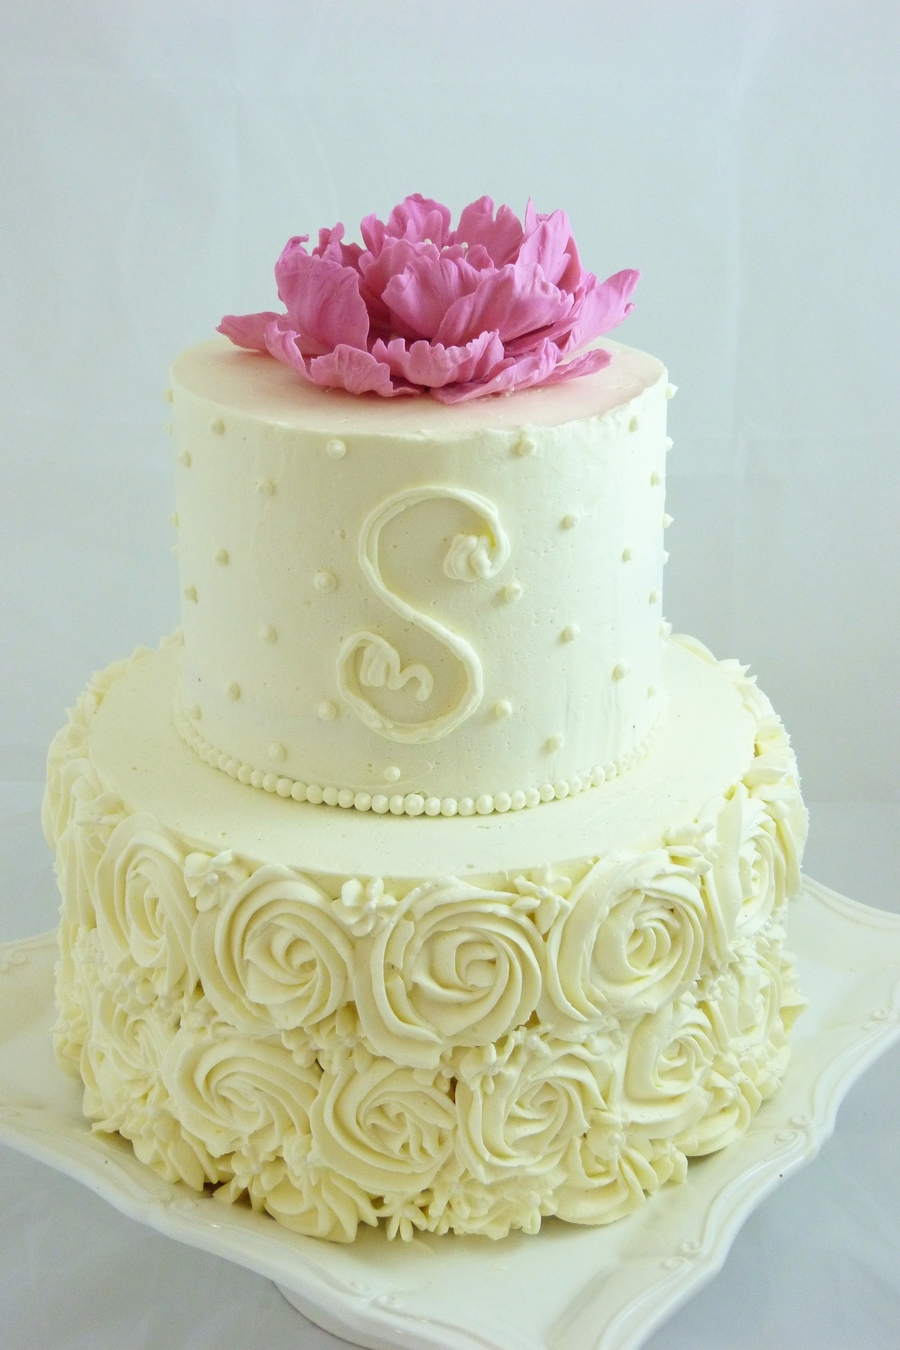 Cake Decorated With Piped Roses : Buttercream Decorated Small Wedding Cake With Piped Roses ...